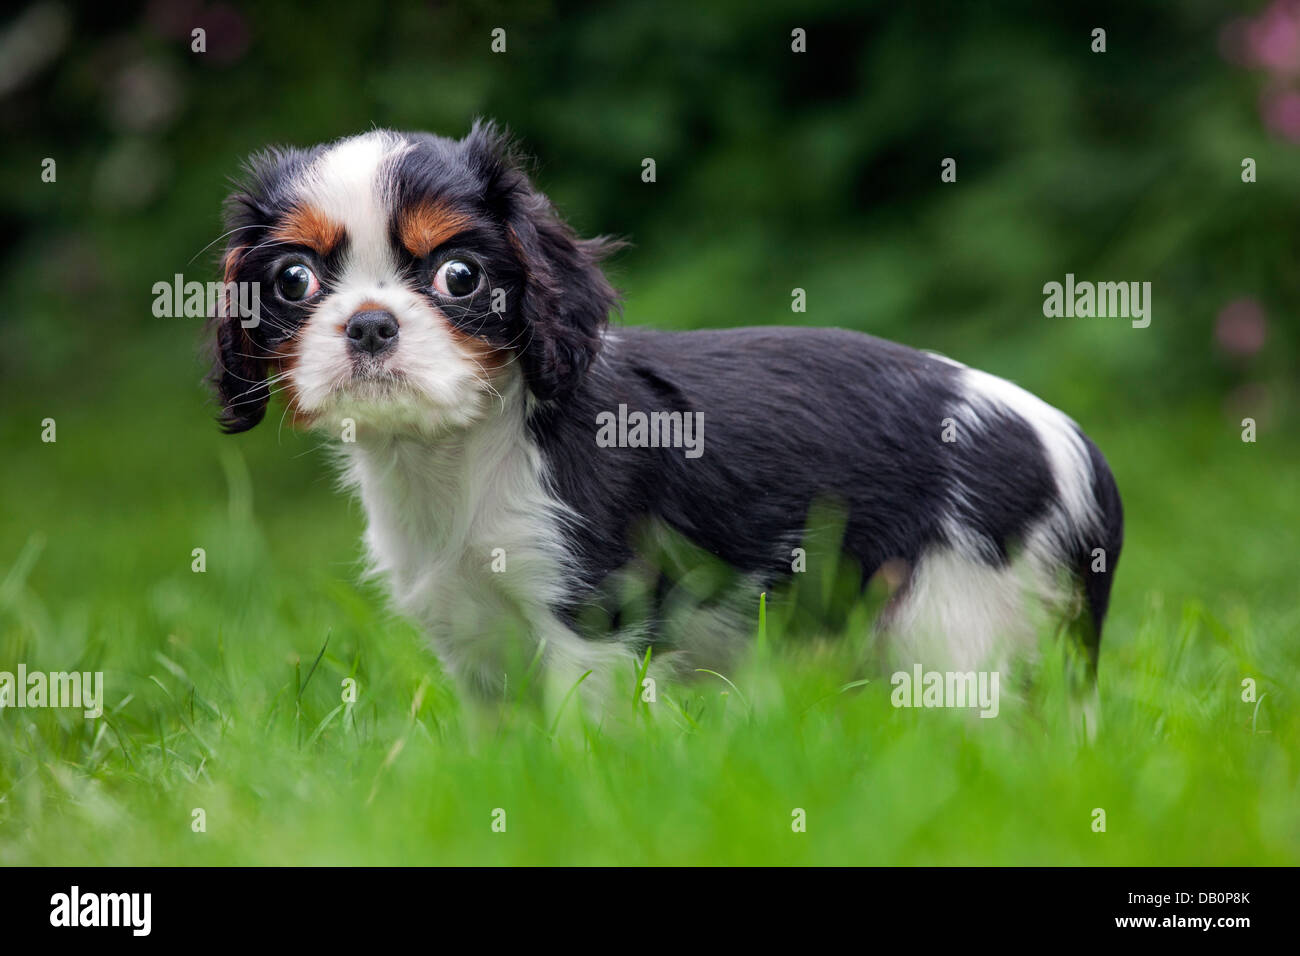 Cute Cavalier King Charles Spaniel Pup In Garden Stock Photo Alamy